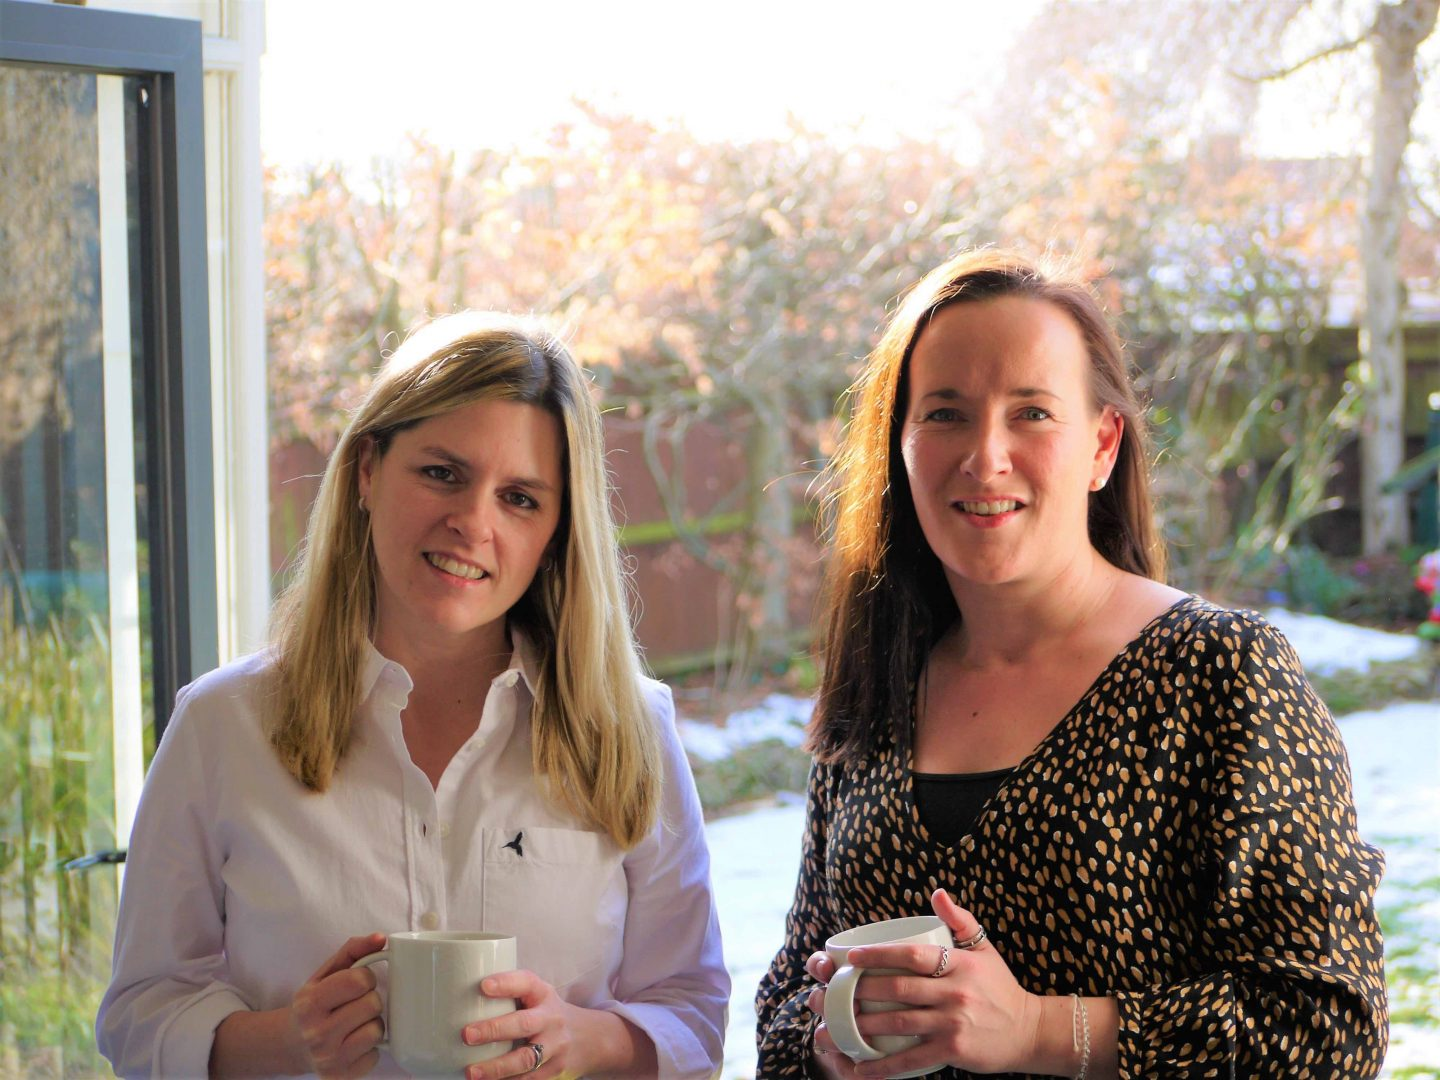 Kate Gregory and Michelle Cairncross, women in business interviewed for The Homeworker